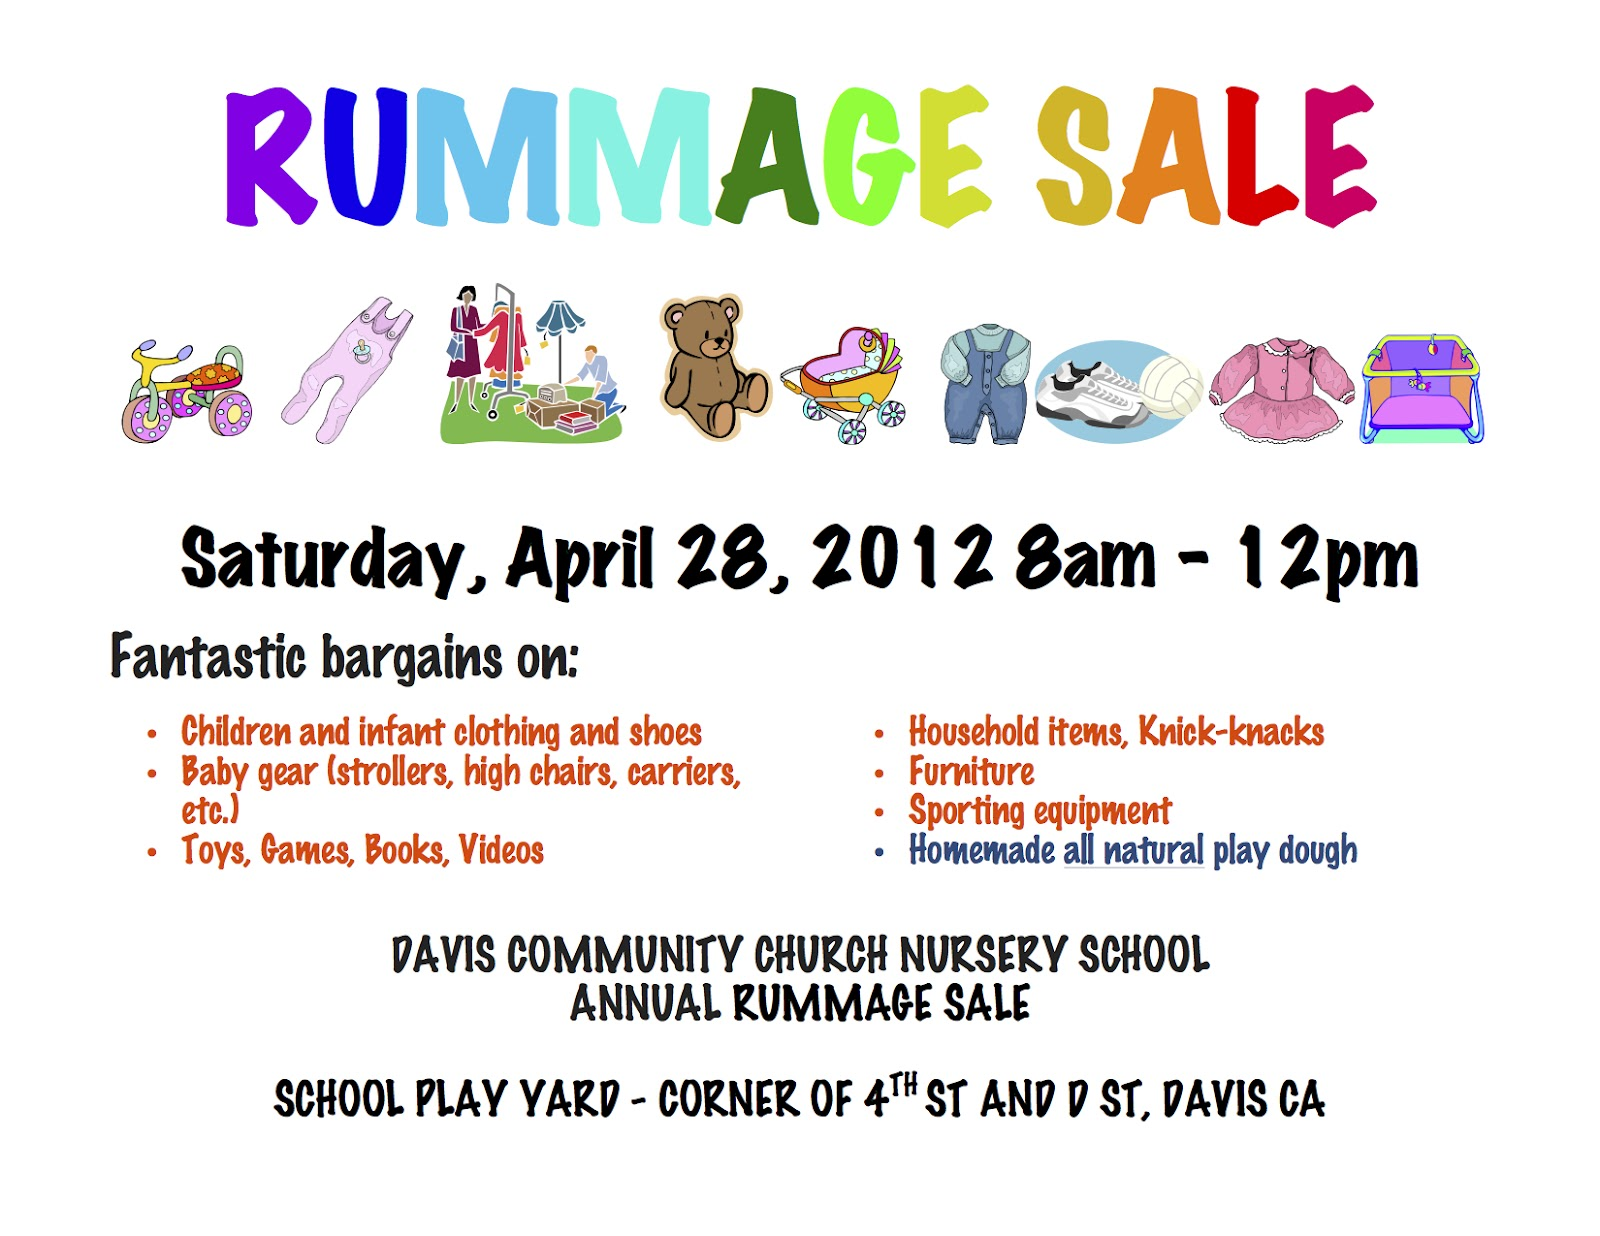 Rummage Sale Flyers http://daviscalifornia.blogspot.com/2012/04/davis-community-church-nursery-school.html#!